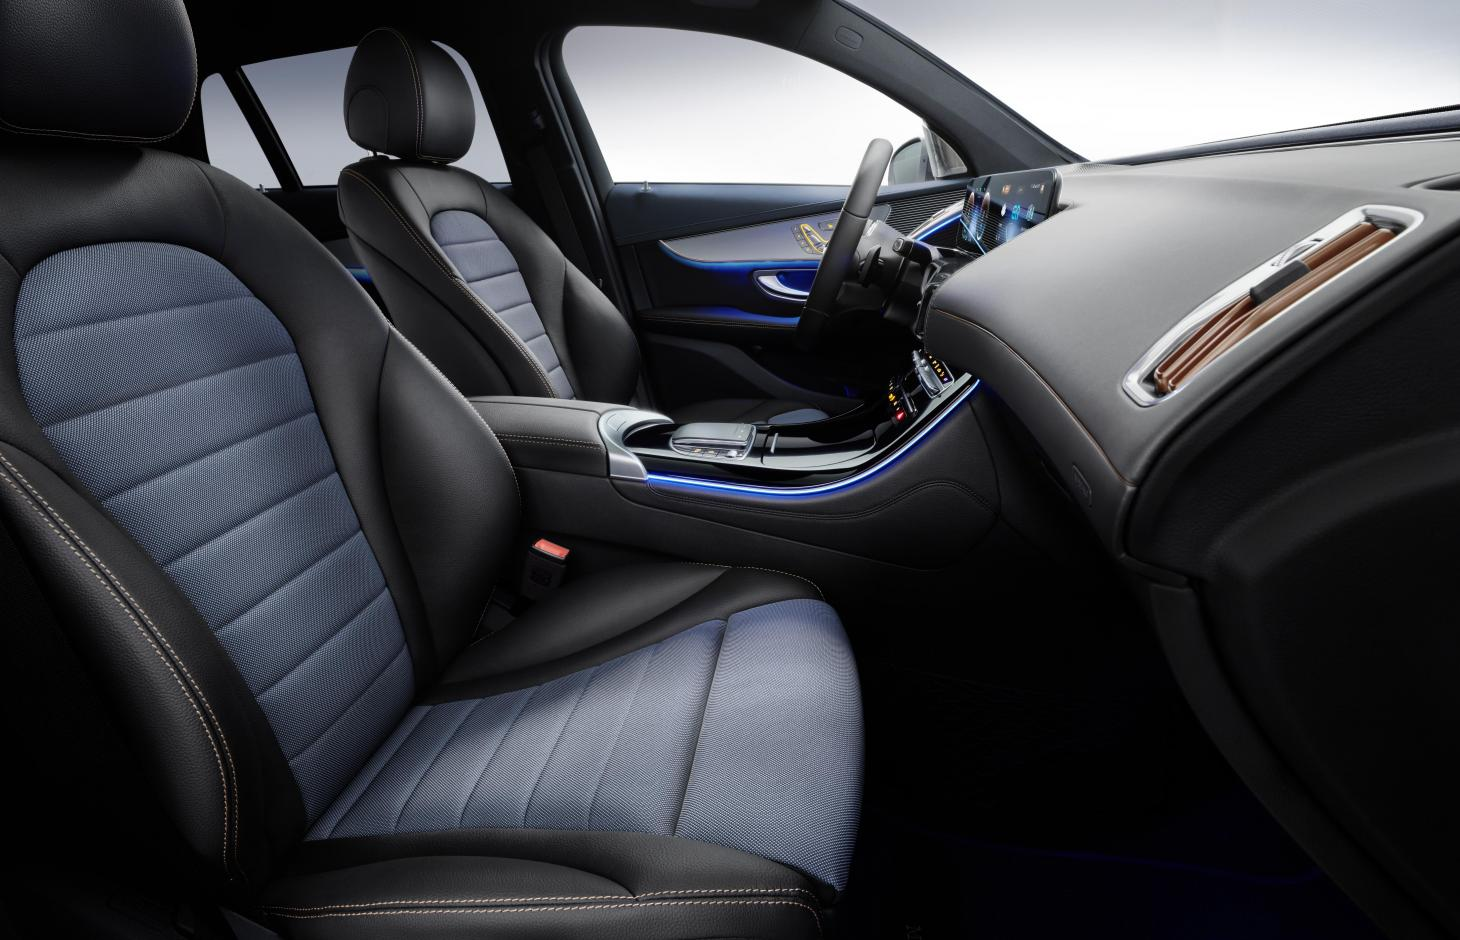 Mercedes electric dreams become reality with EQC Wallpaper 1460x940